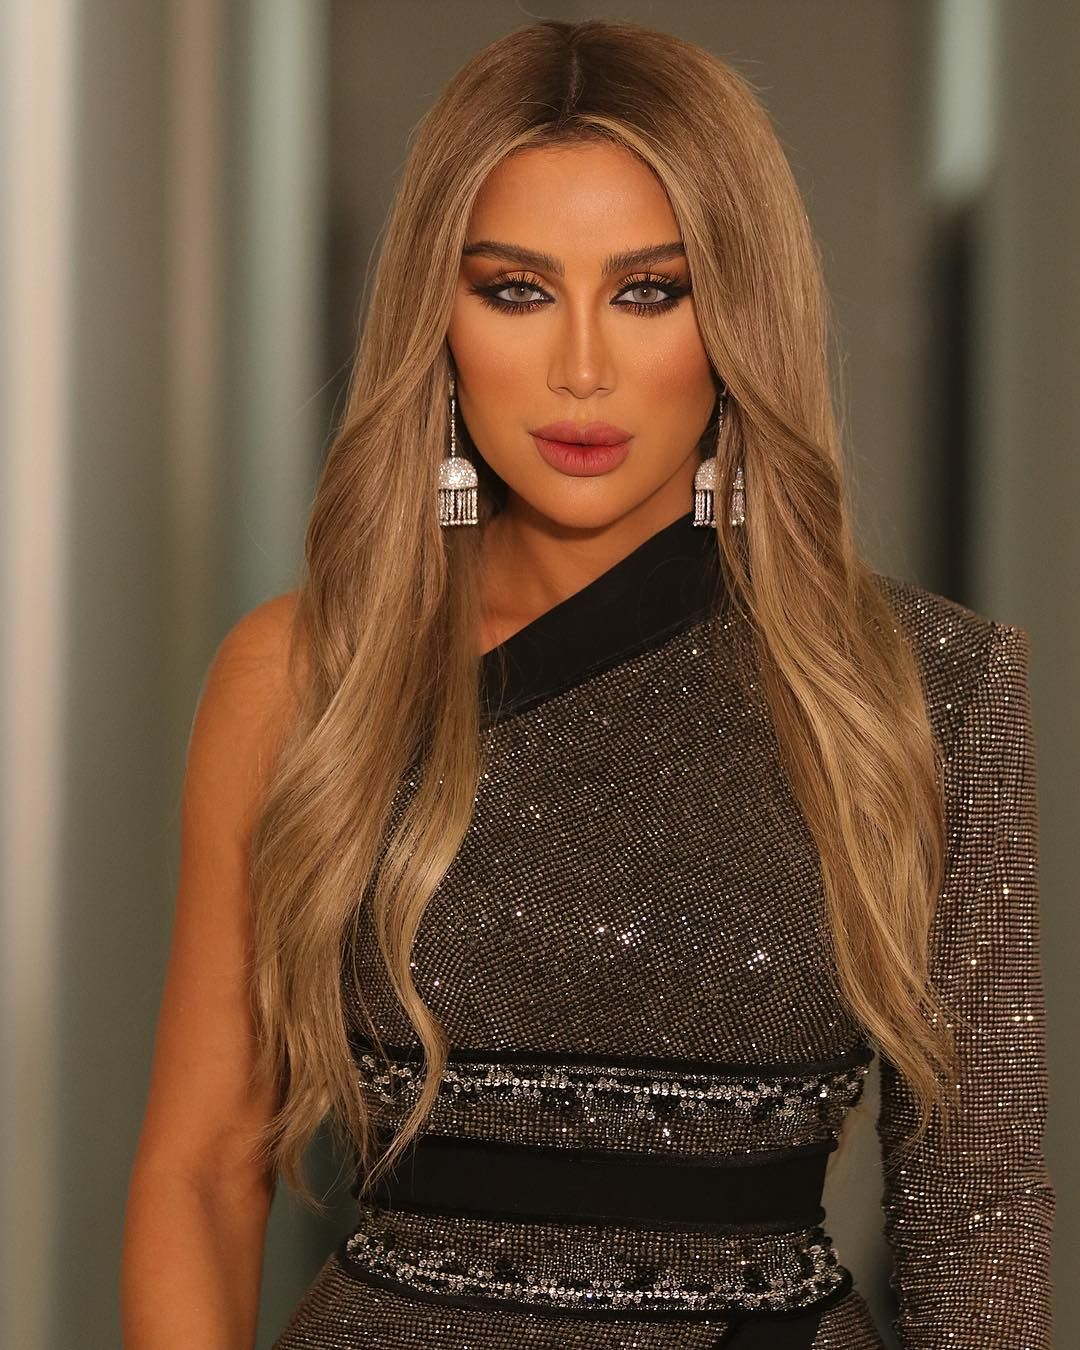 Maya Diab On Instagram Back To Longhair Second Look Form Celebrityduetstv Tonight Are You Watching Ni Long Hair Styles Hair Styles Celebrity Style